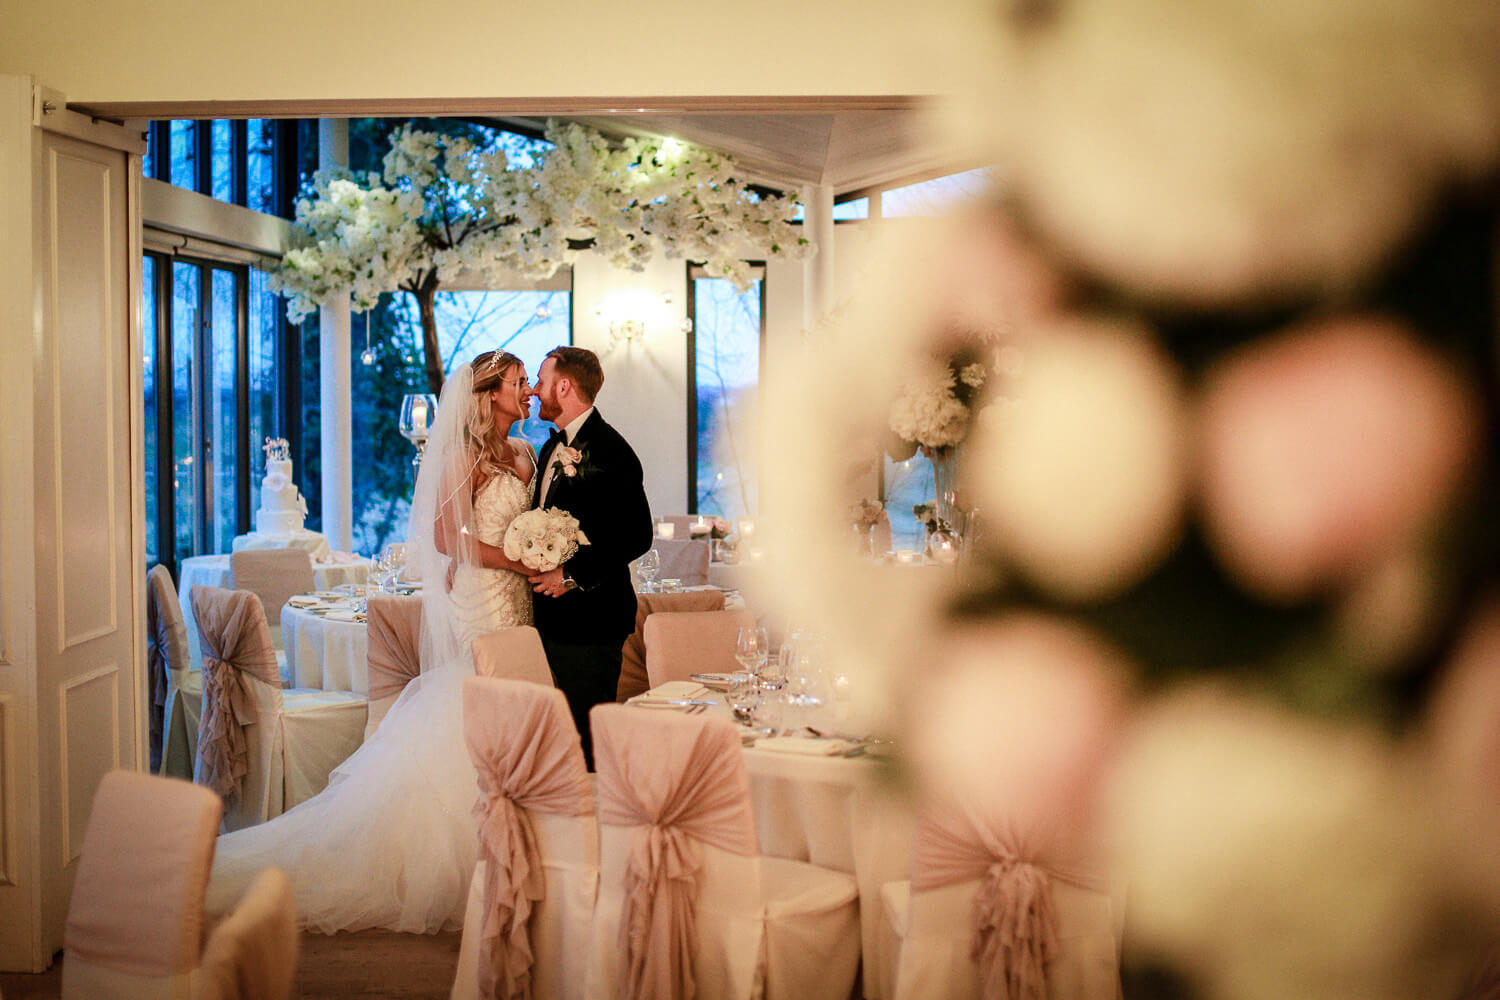 Bride and groom kissing in Ballroom at West Tower with flowers